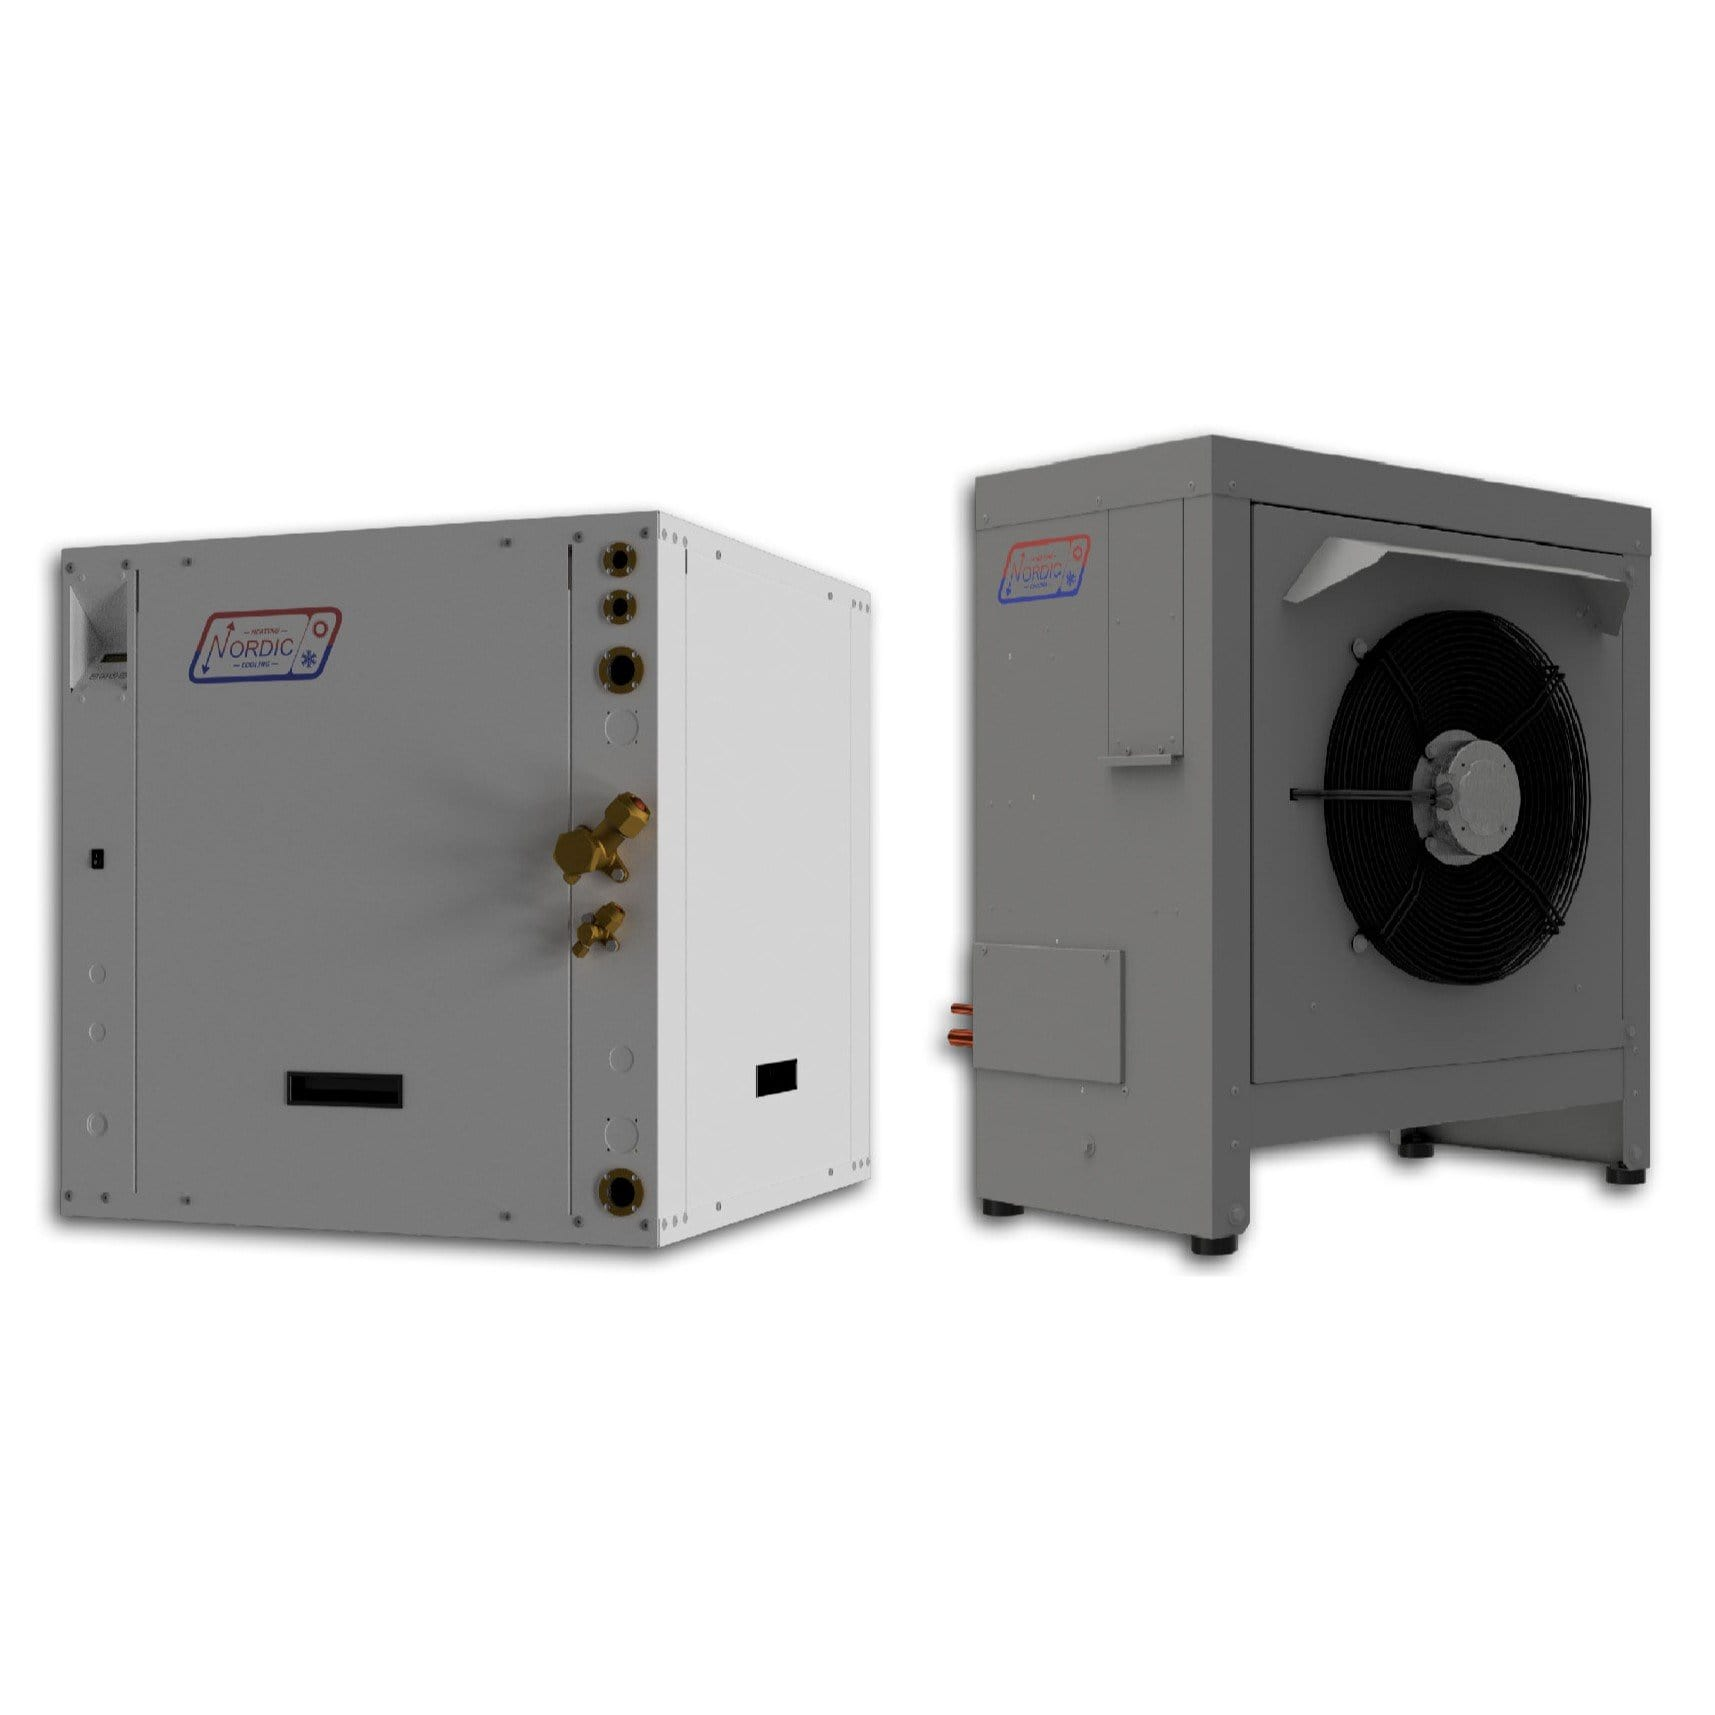 ATW-75 Air to Water Heat Pump - Nordic ATW75 - Split Type - 6 Tons Nominal Cooling Capacity